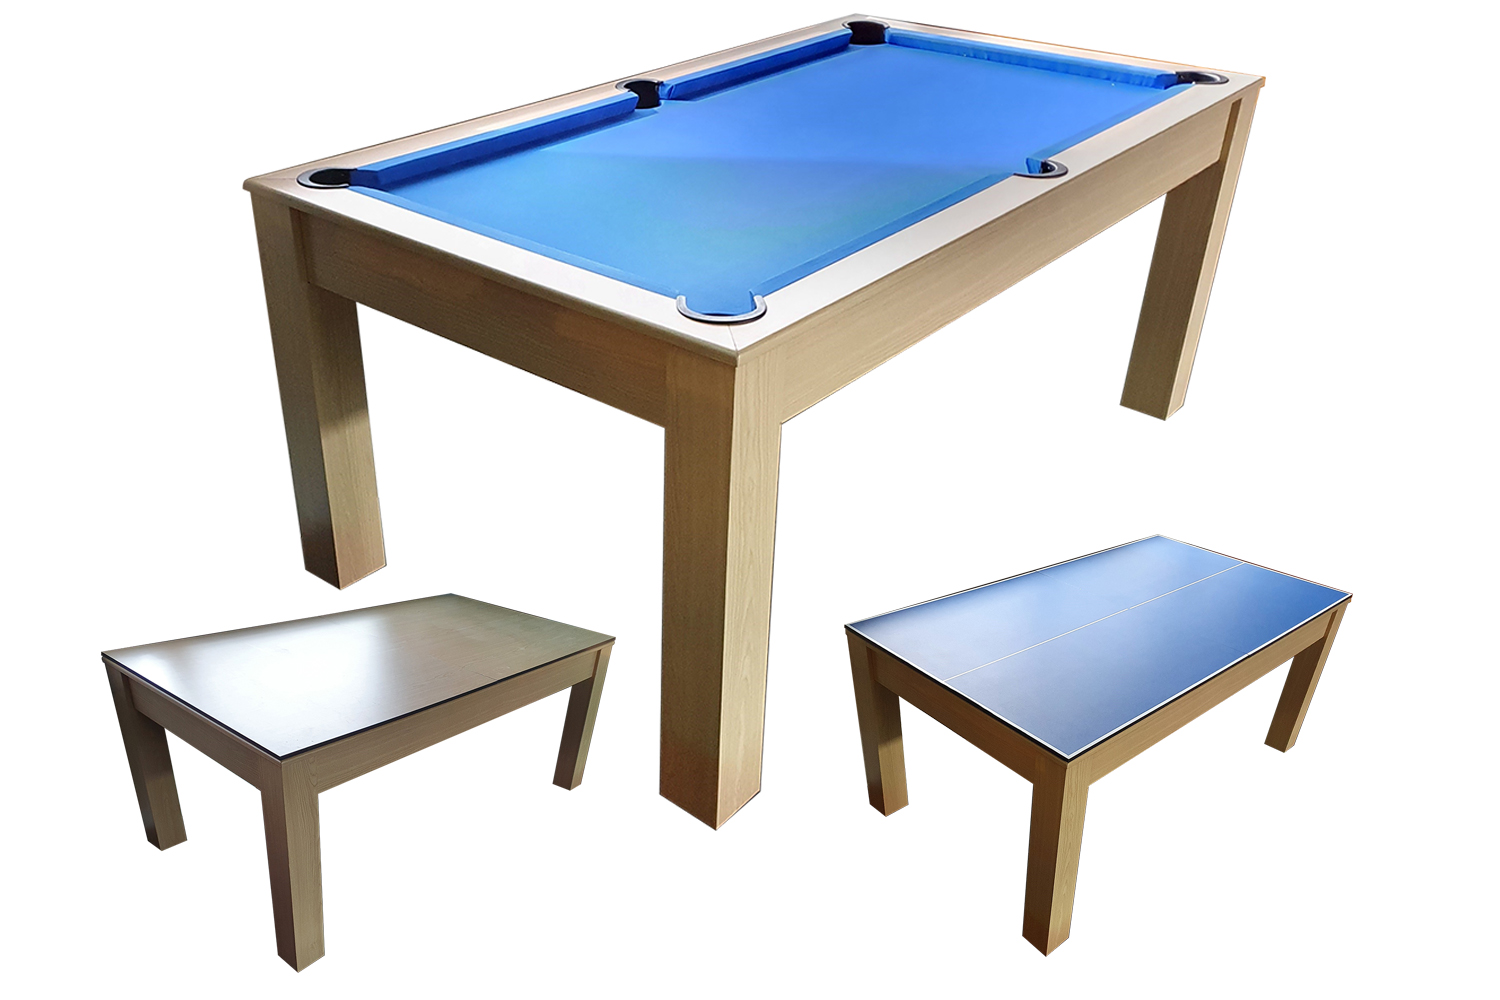 PO0065: Showmodel Pooltafel TopTable Dinner Prime #1